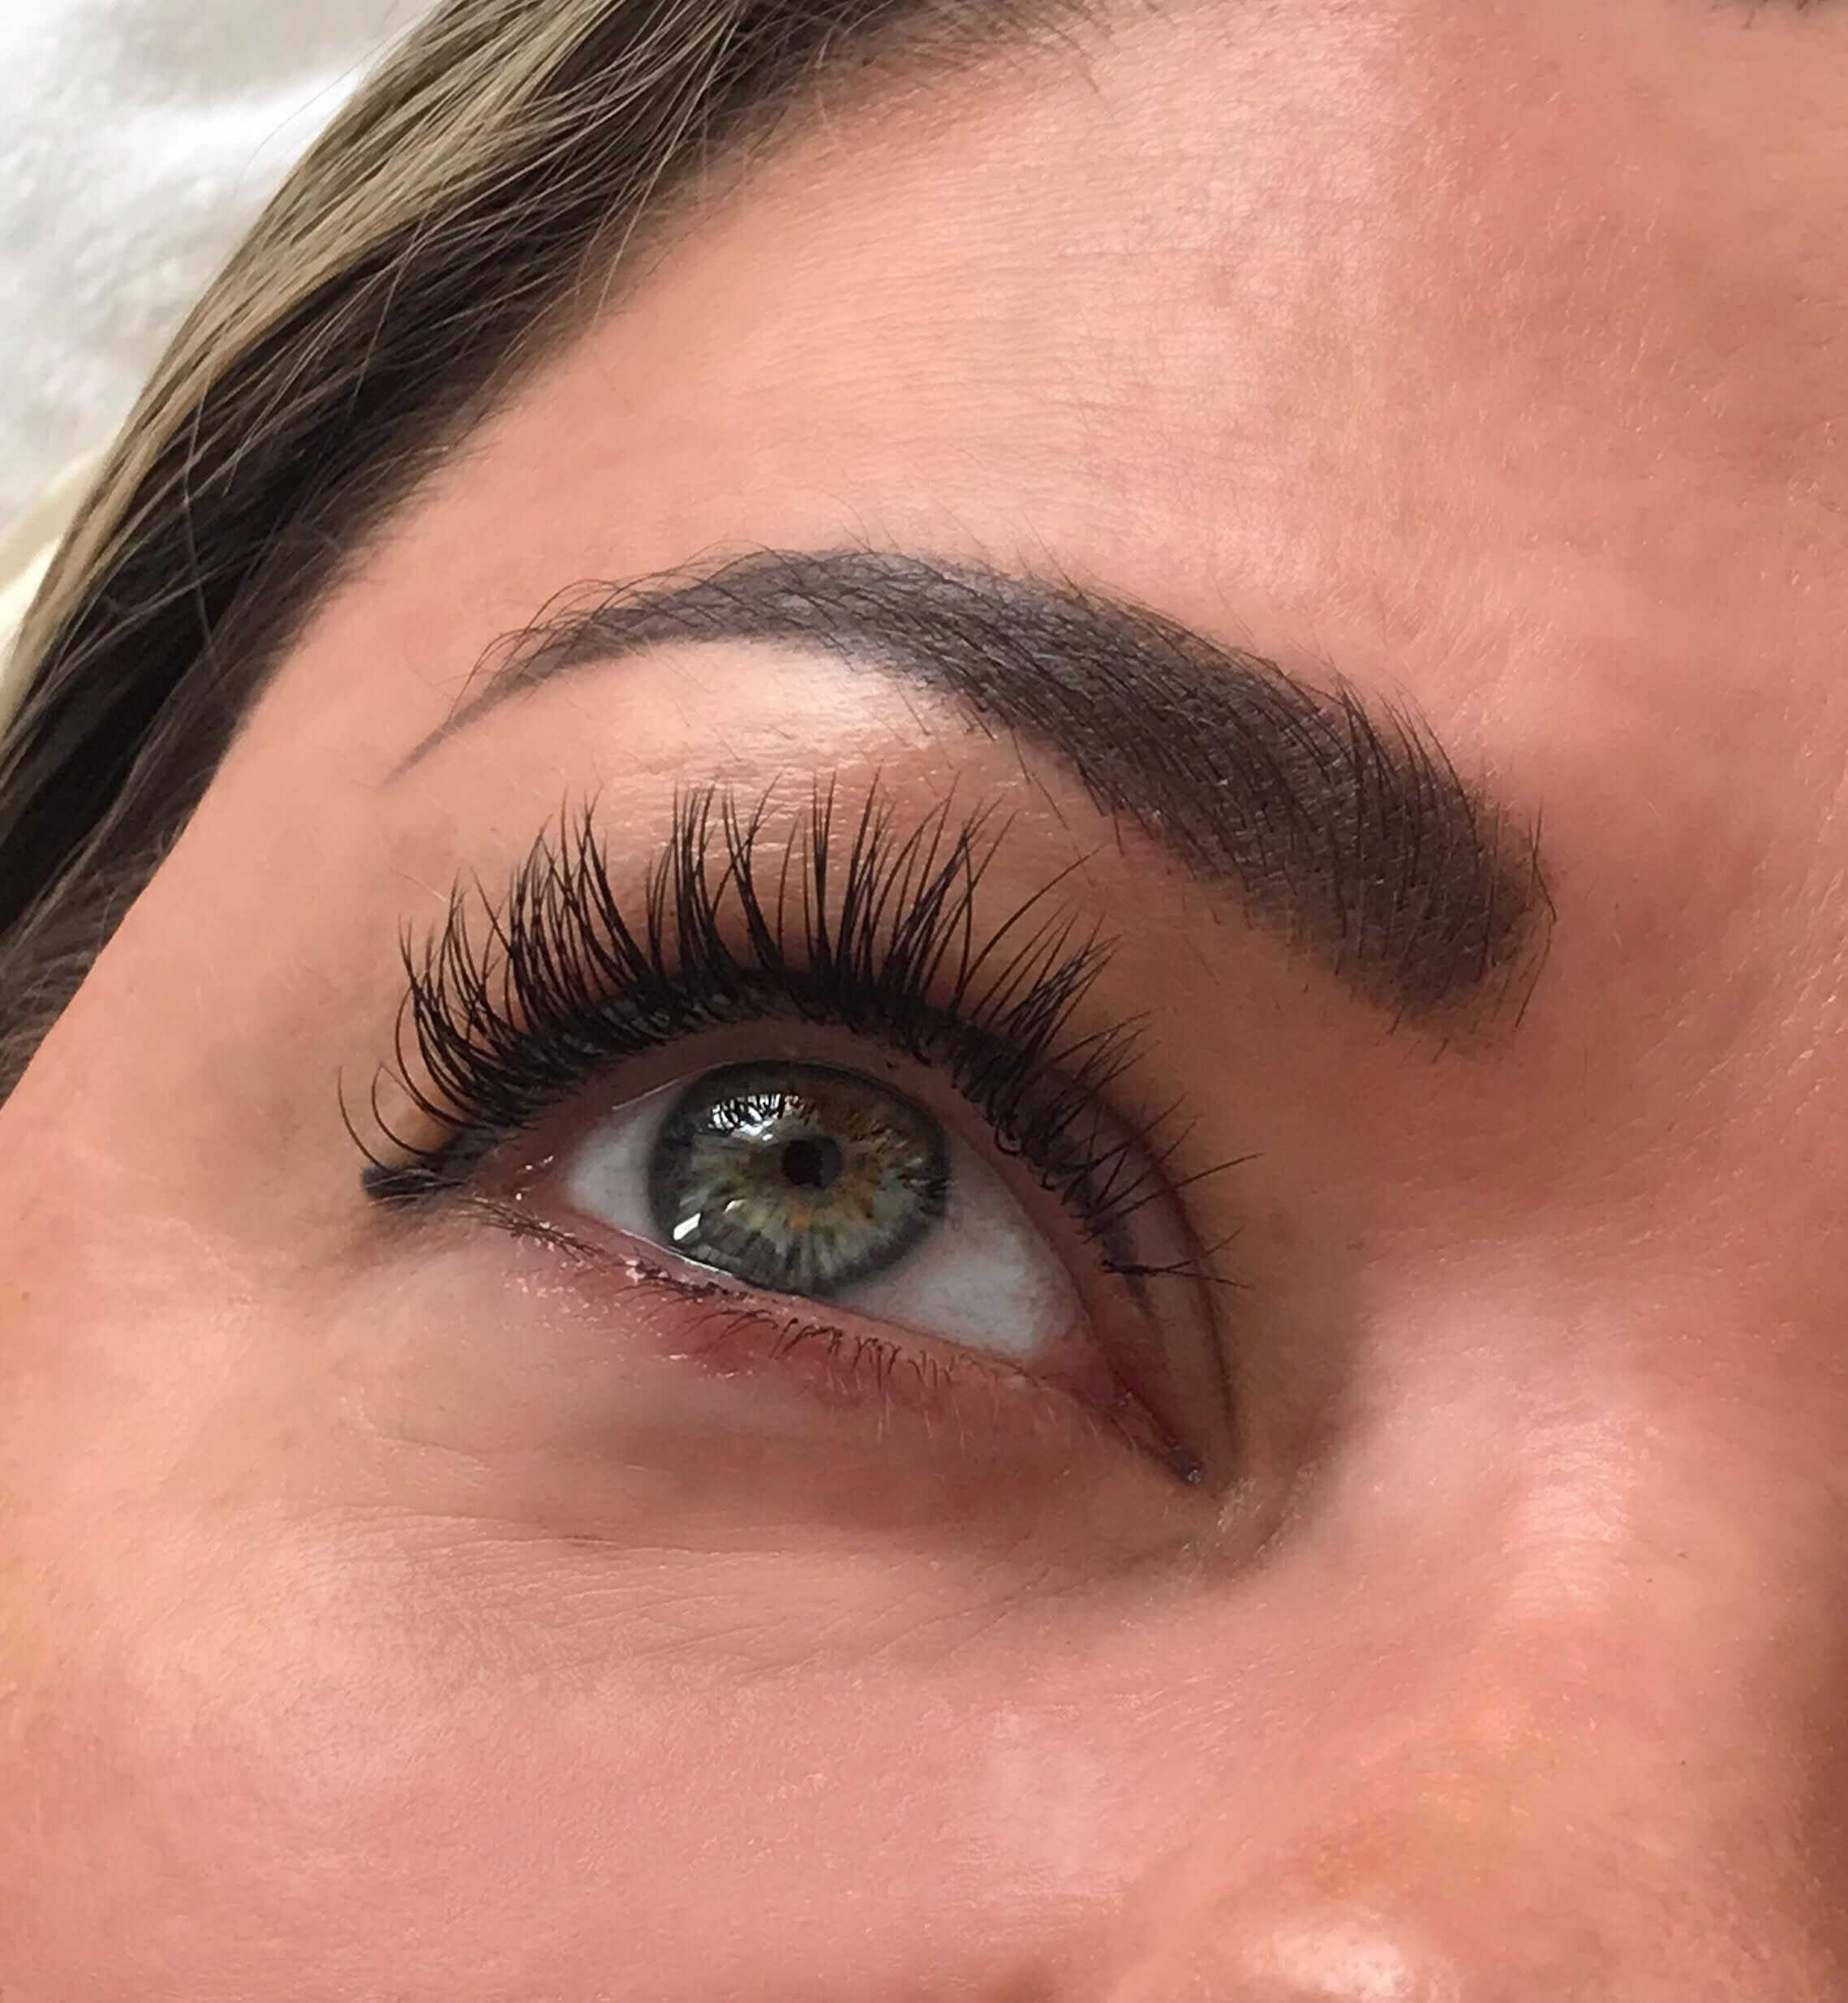 Eyelash & Eyebrow Technician